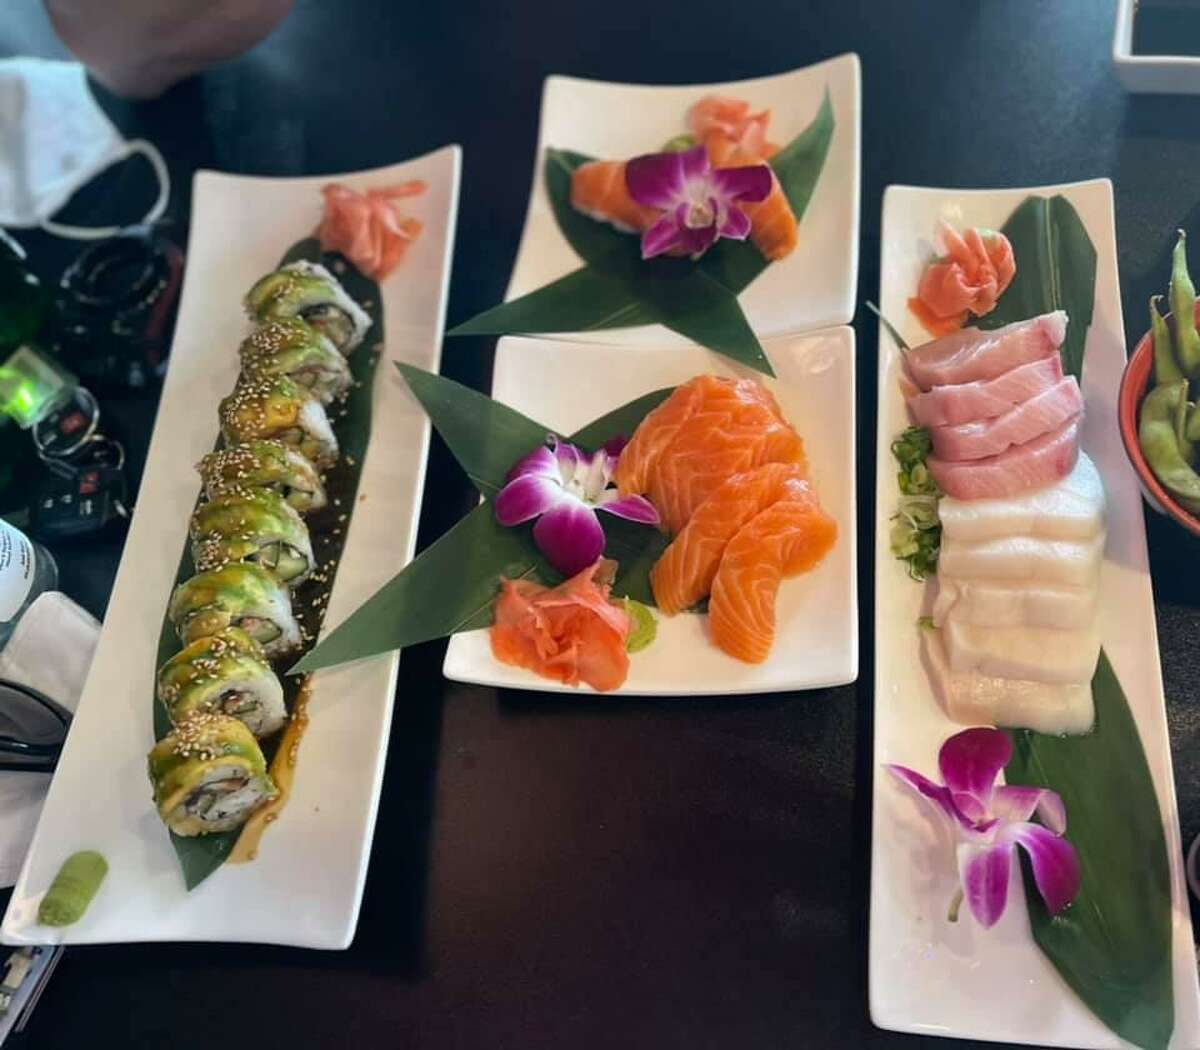 Kokai Sushi and Lounge will be participating in Houston Restaurant Weeks